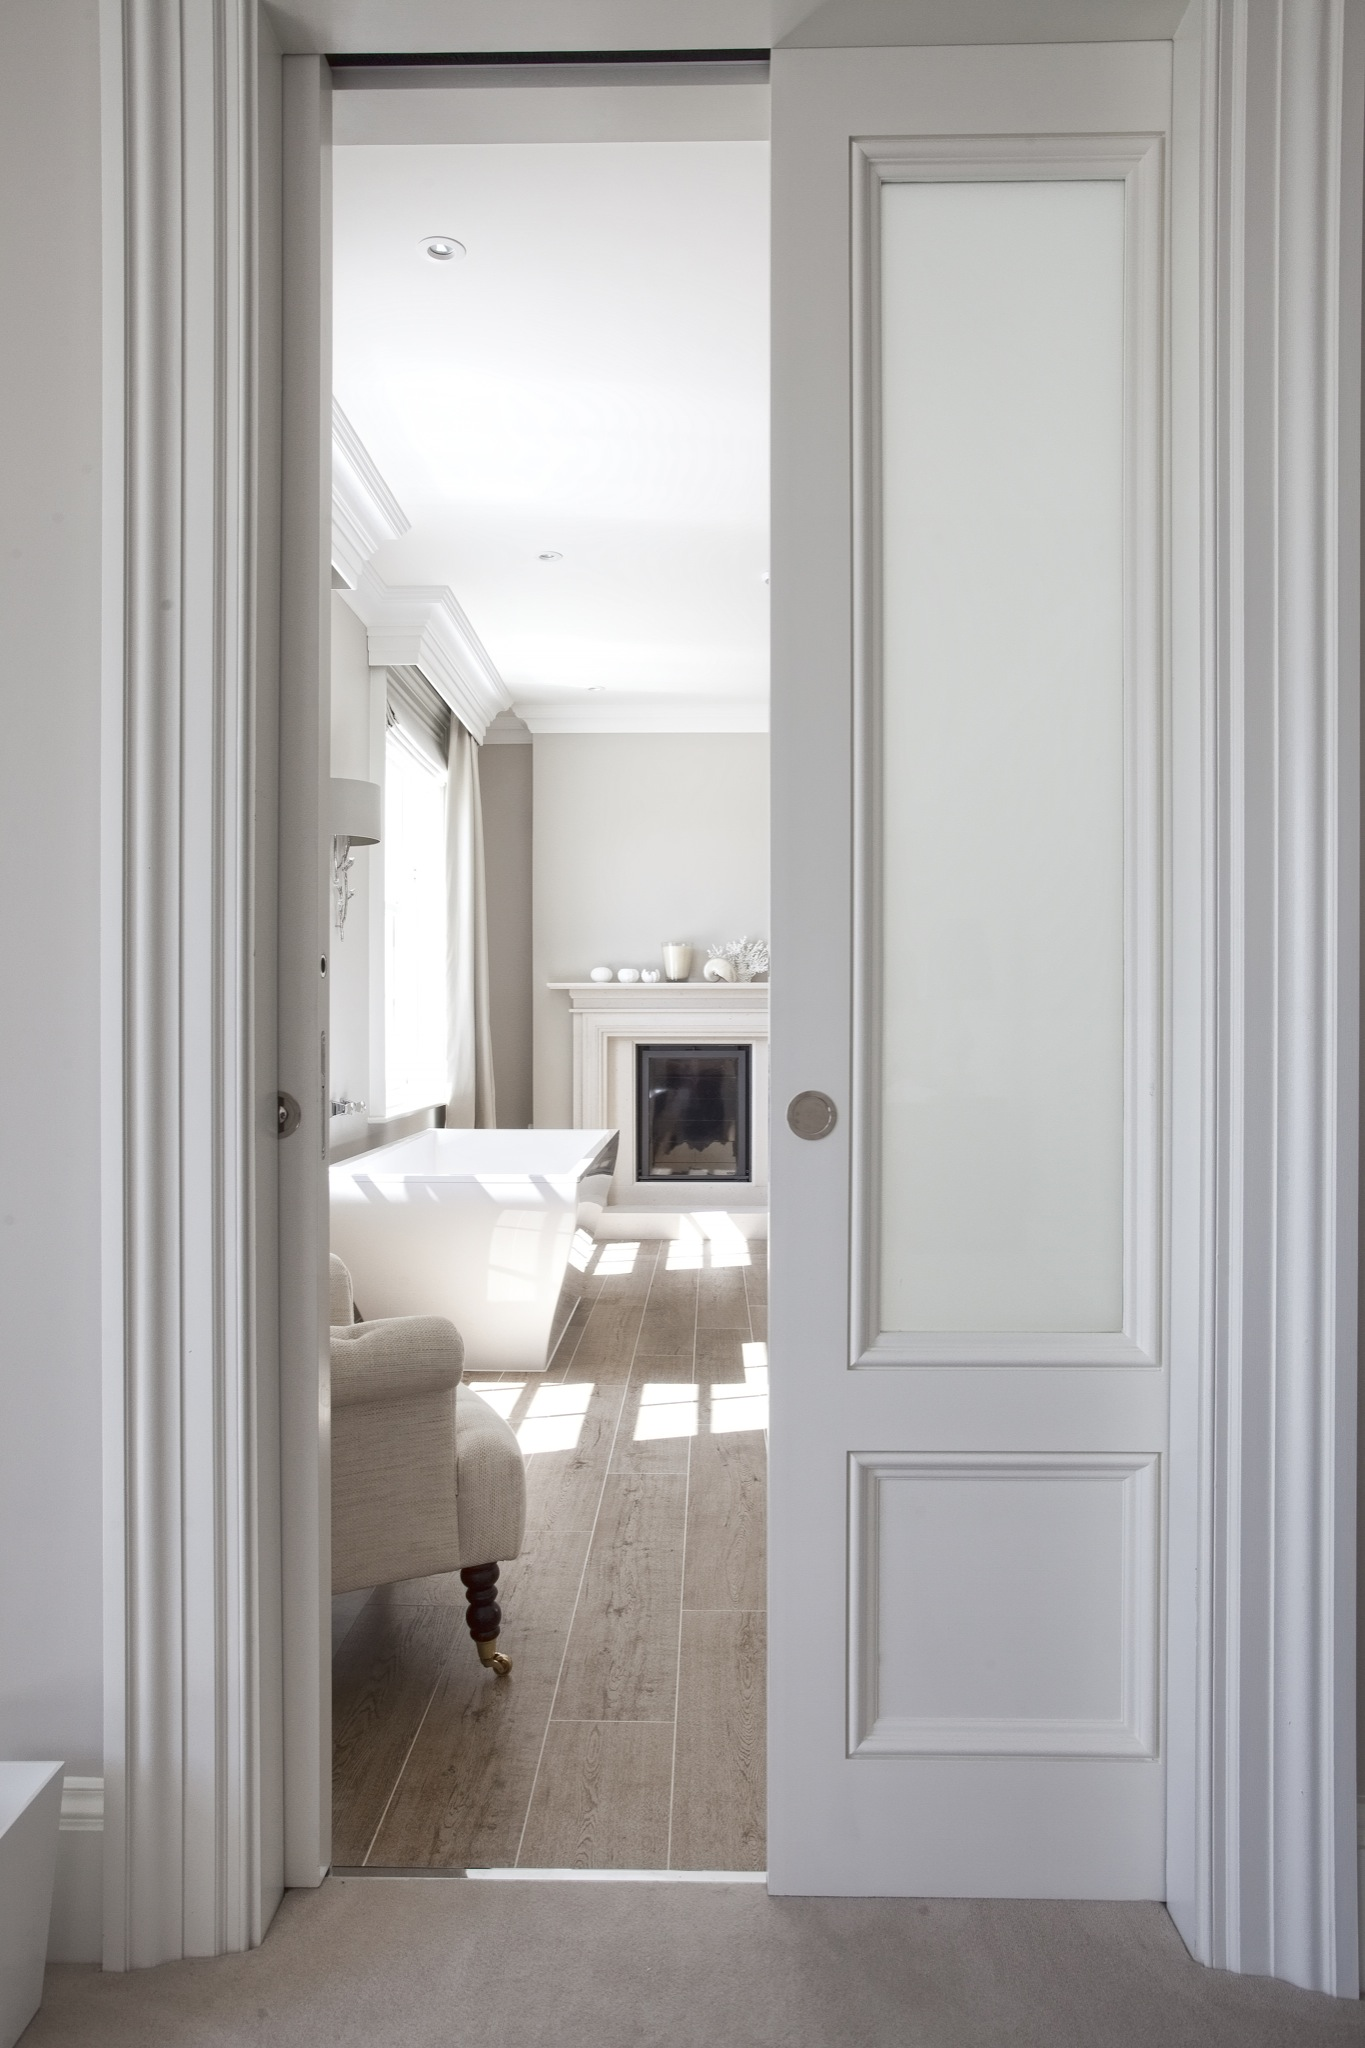 Sliding Pocket Doors Fire Rated Protect Your Home From Fire Interior Exterior Ideas